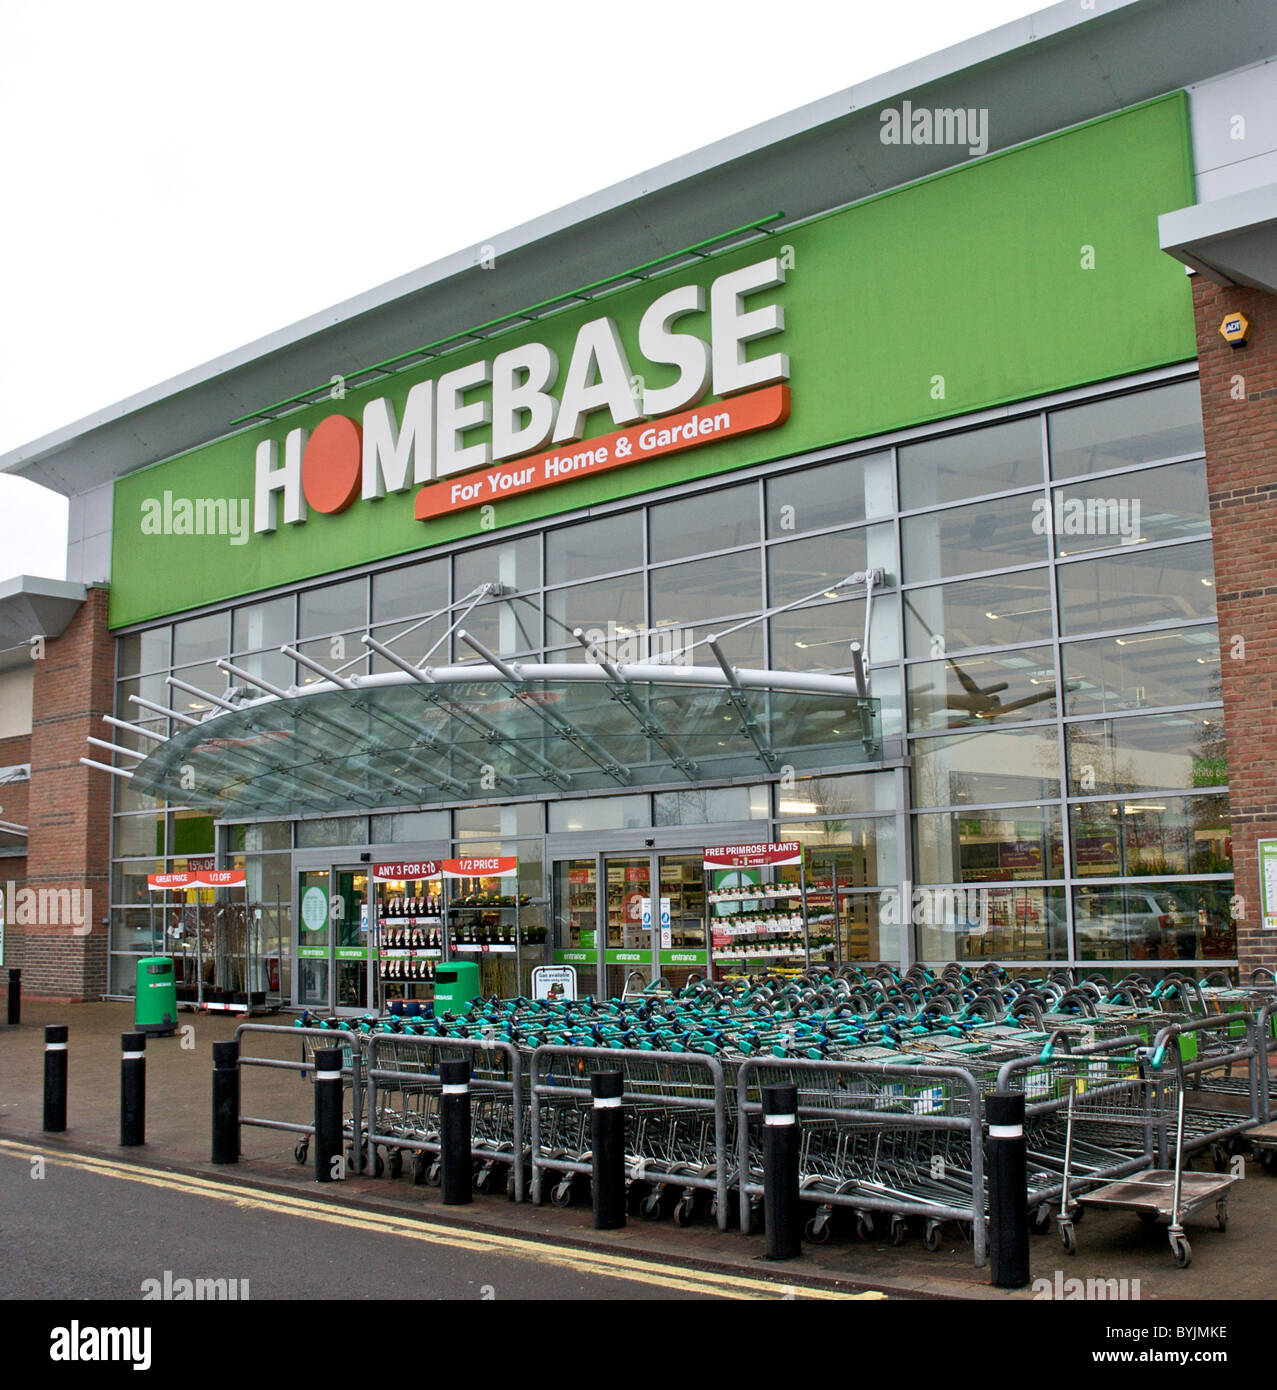 Exceptional Interior Of Large Store Showing The Wide Range Of Merchandise Available.  Homebase